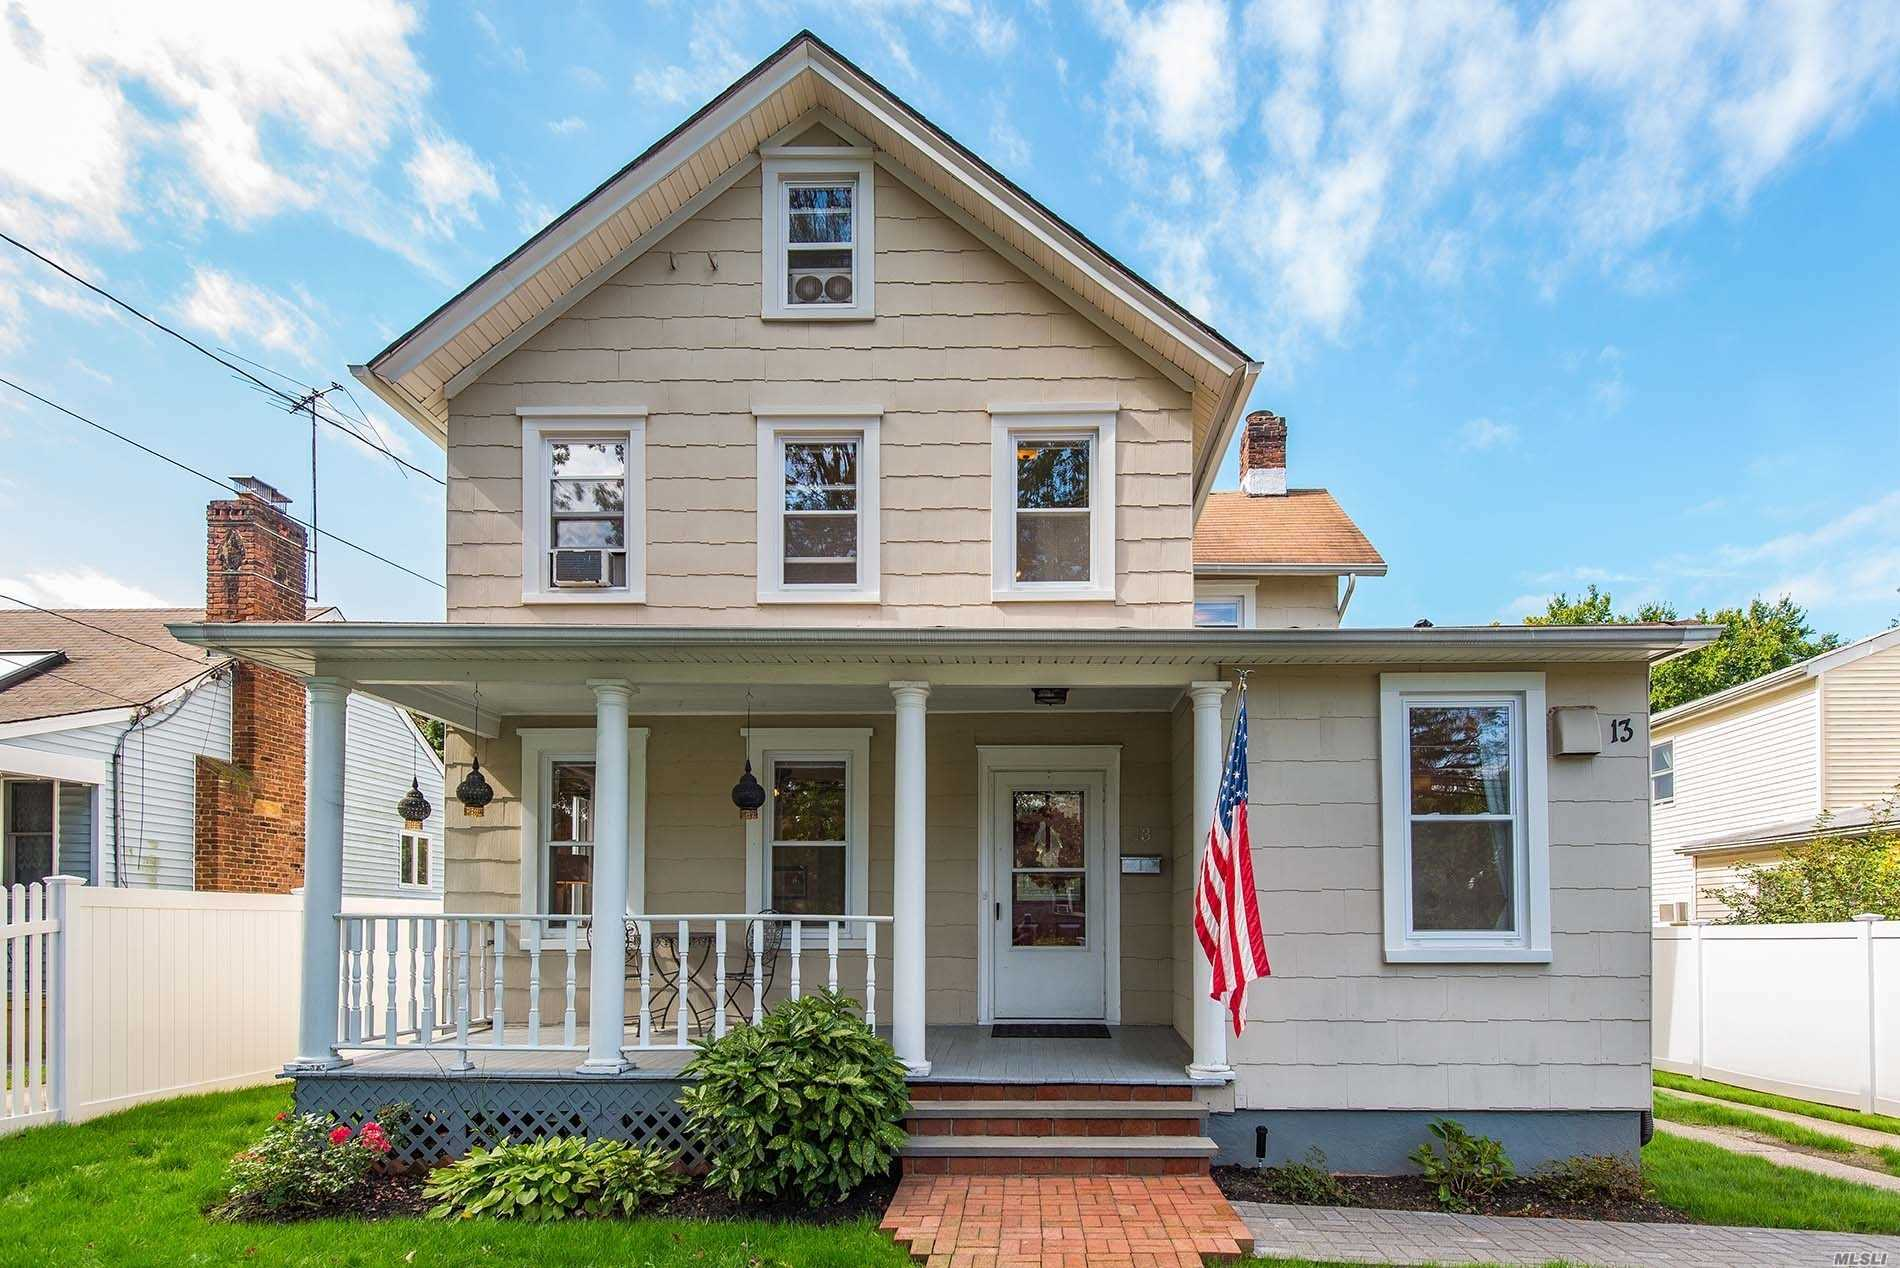 Photo of home for sale at 13 Crescent Beach Rd, Glen Cove NY